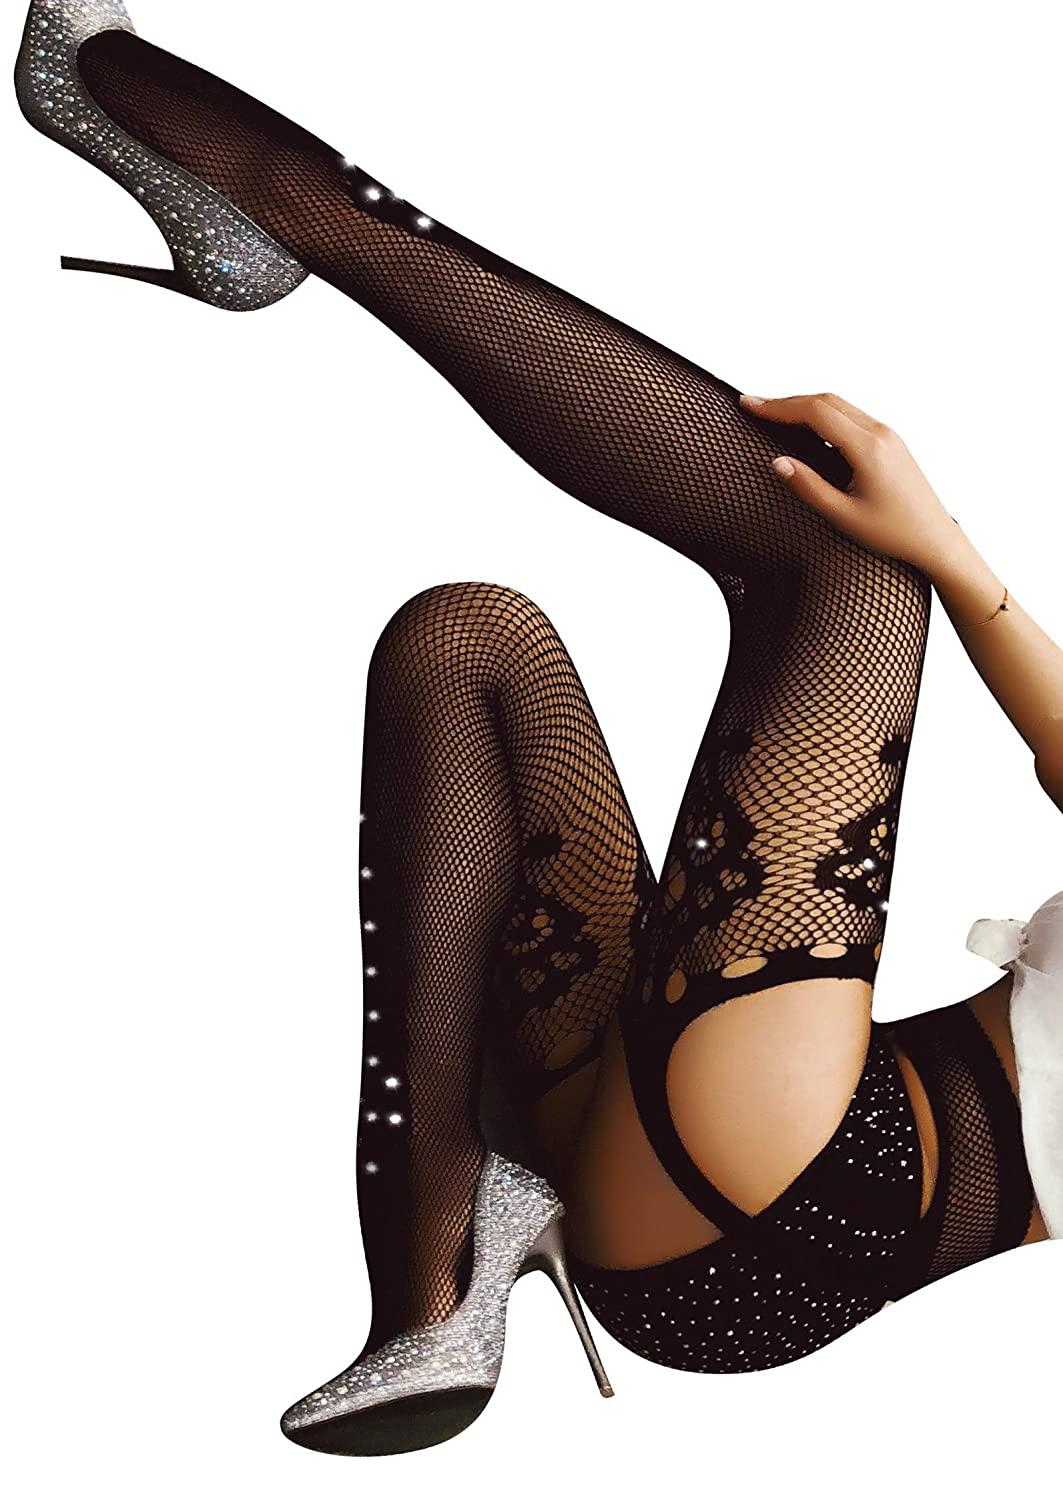 TGD Women's Rhinestone Fishnet Tights Suspender Pantyhose Thigh High Stockings 6118*W31